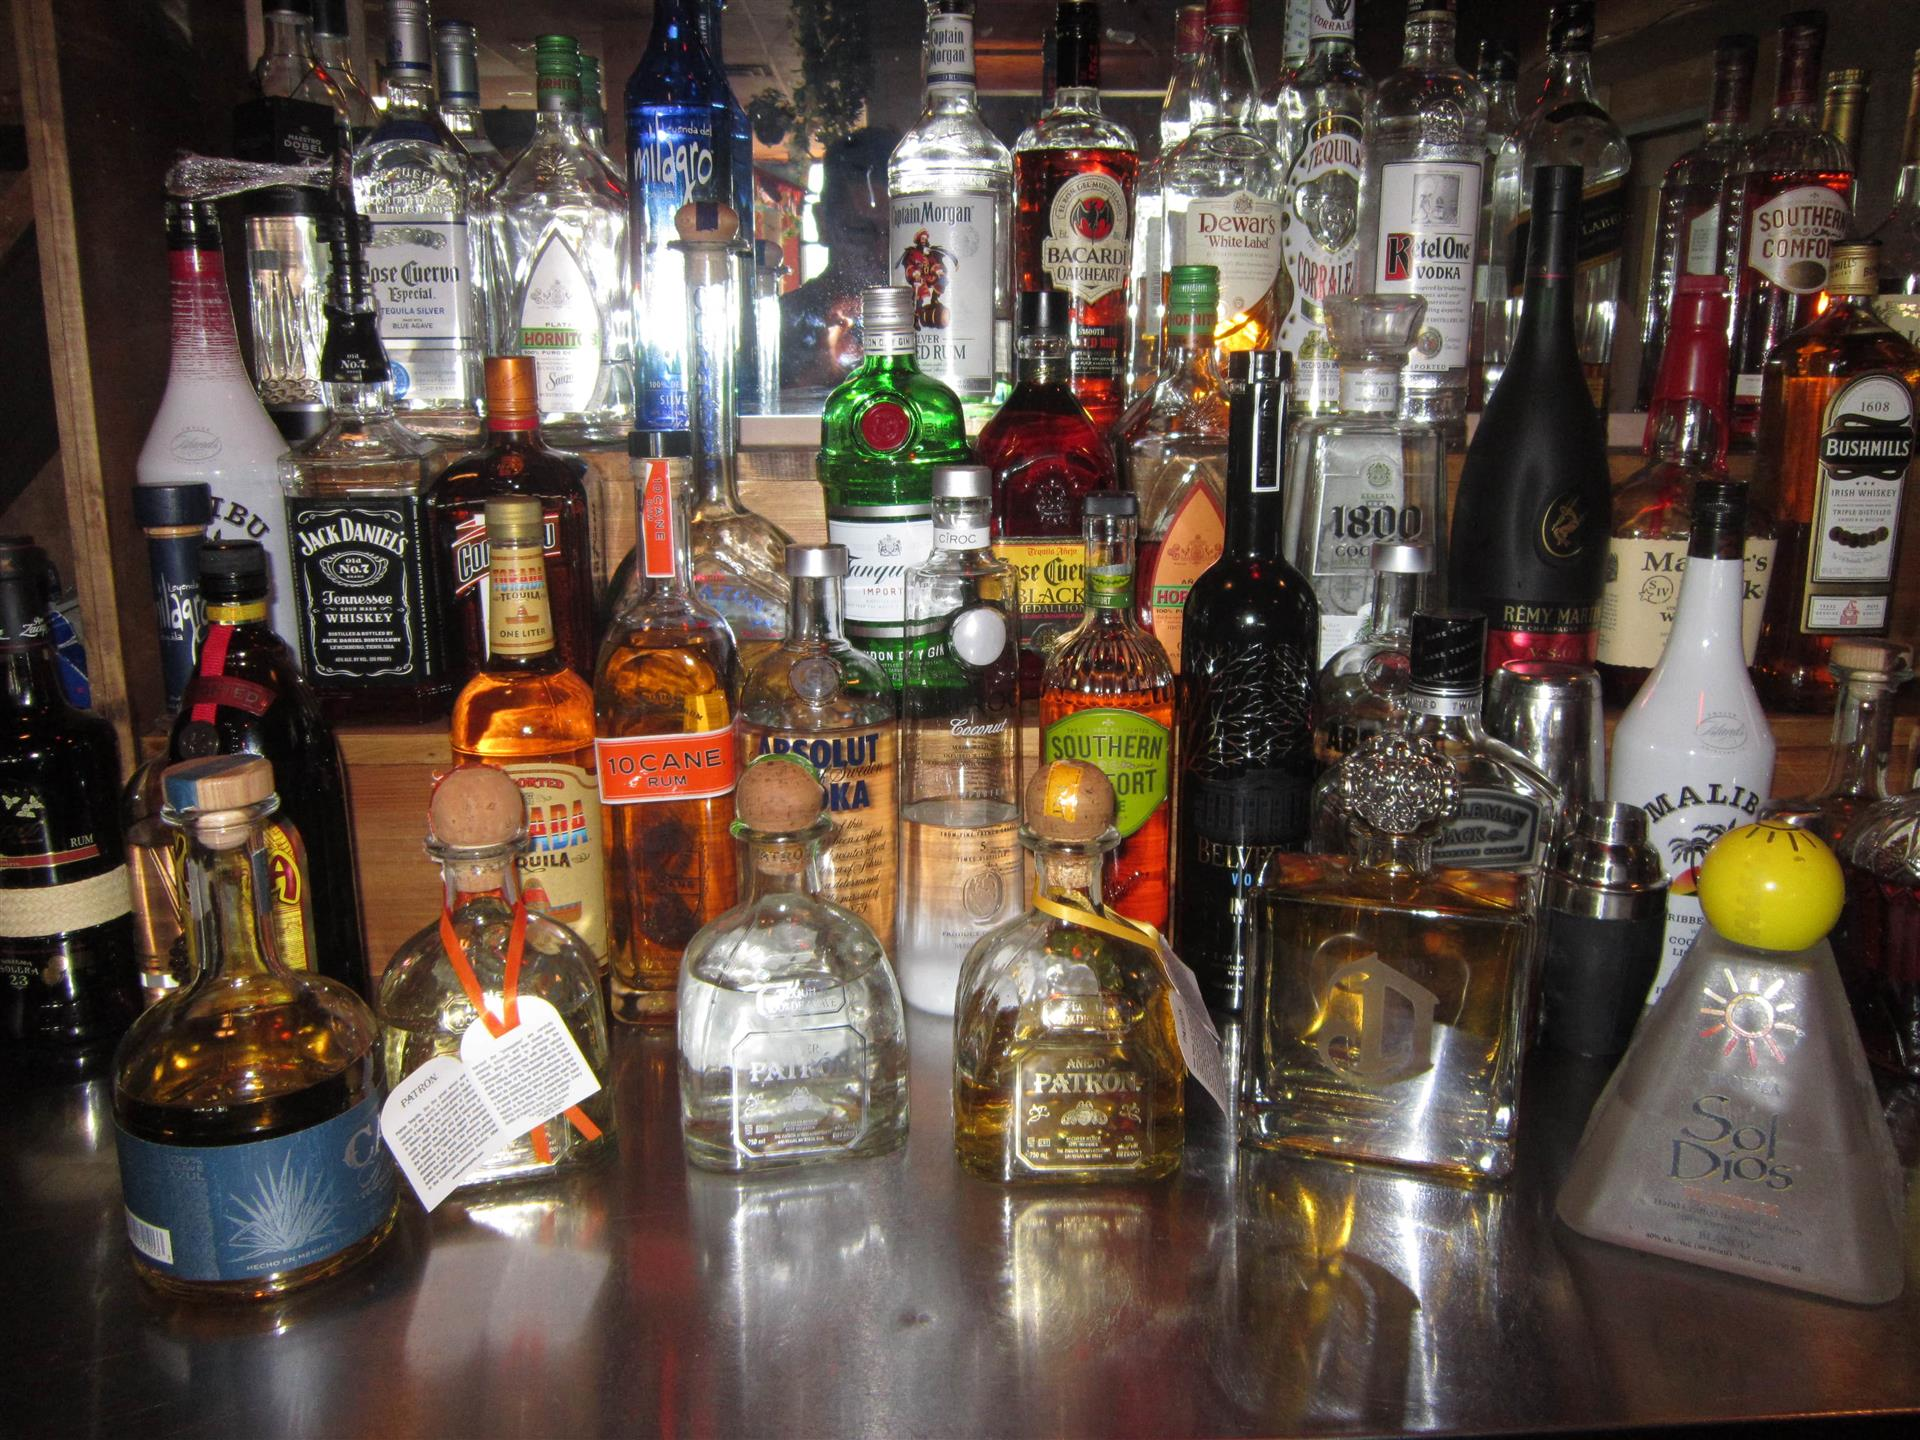 Bottles of liquor on a bar